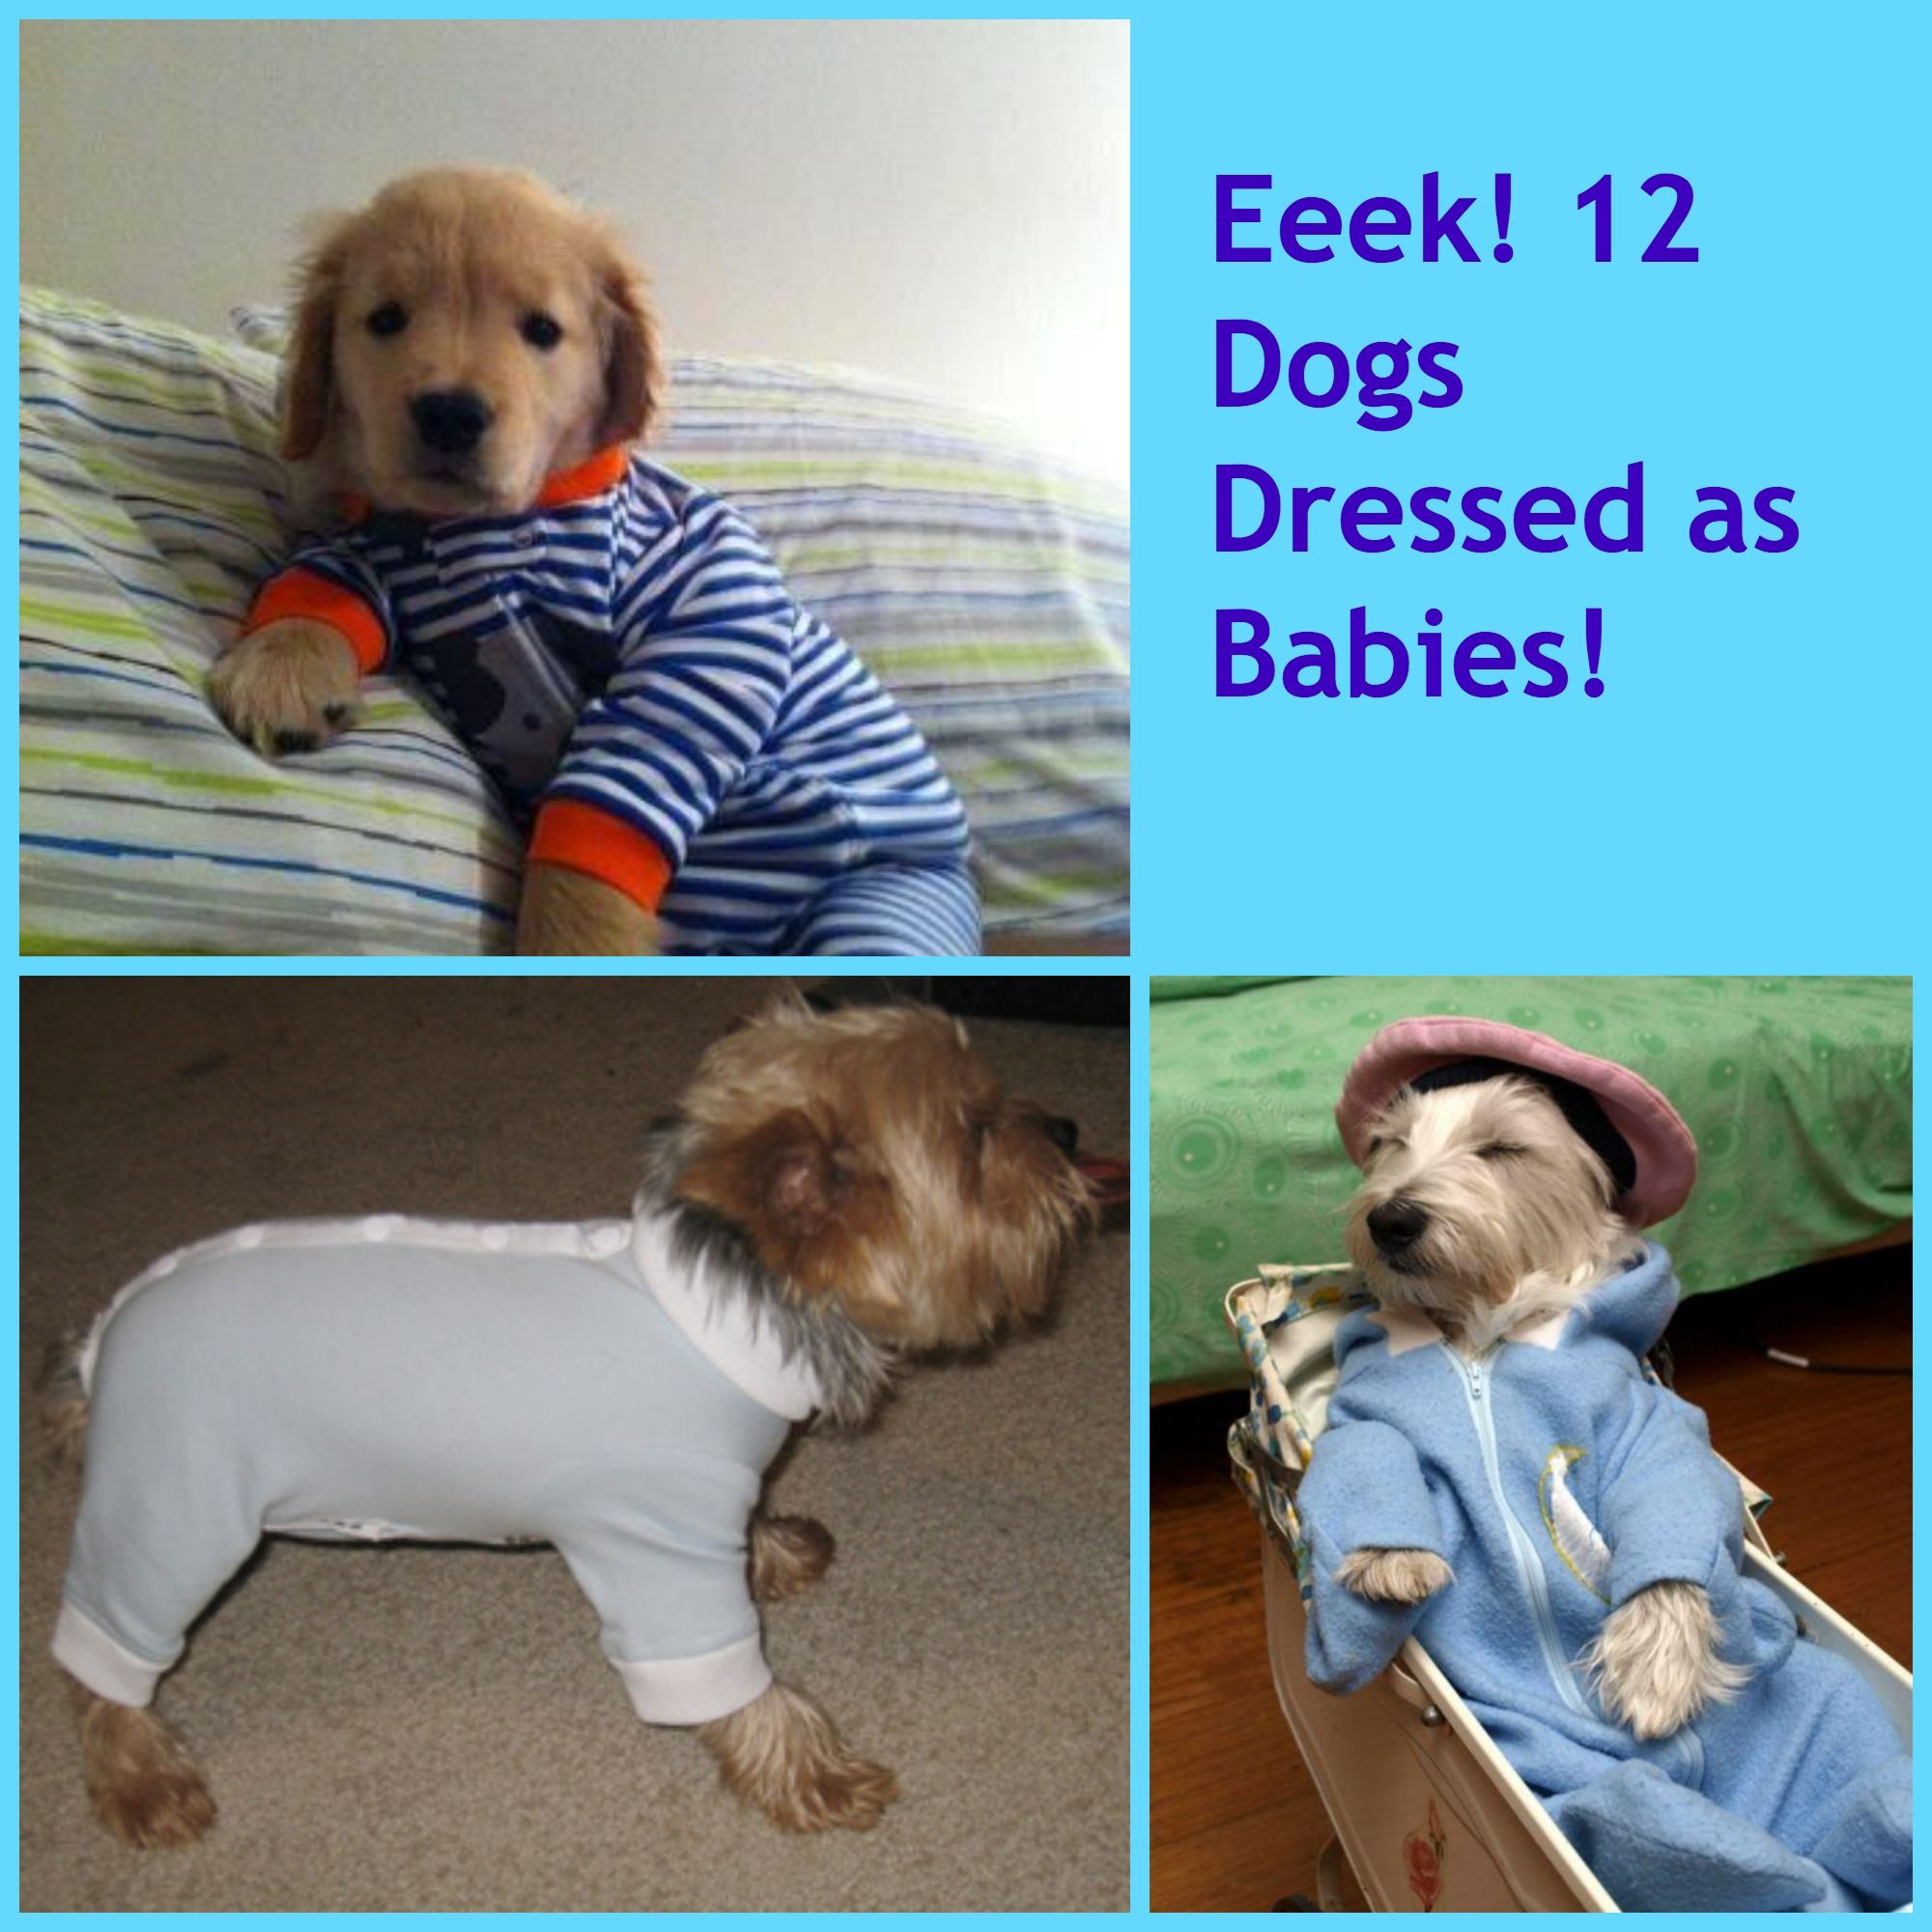 Disney Family Recipes Crafts And Activities Baby Dogs Cute Dog Photos Dog Dresses